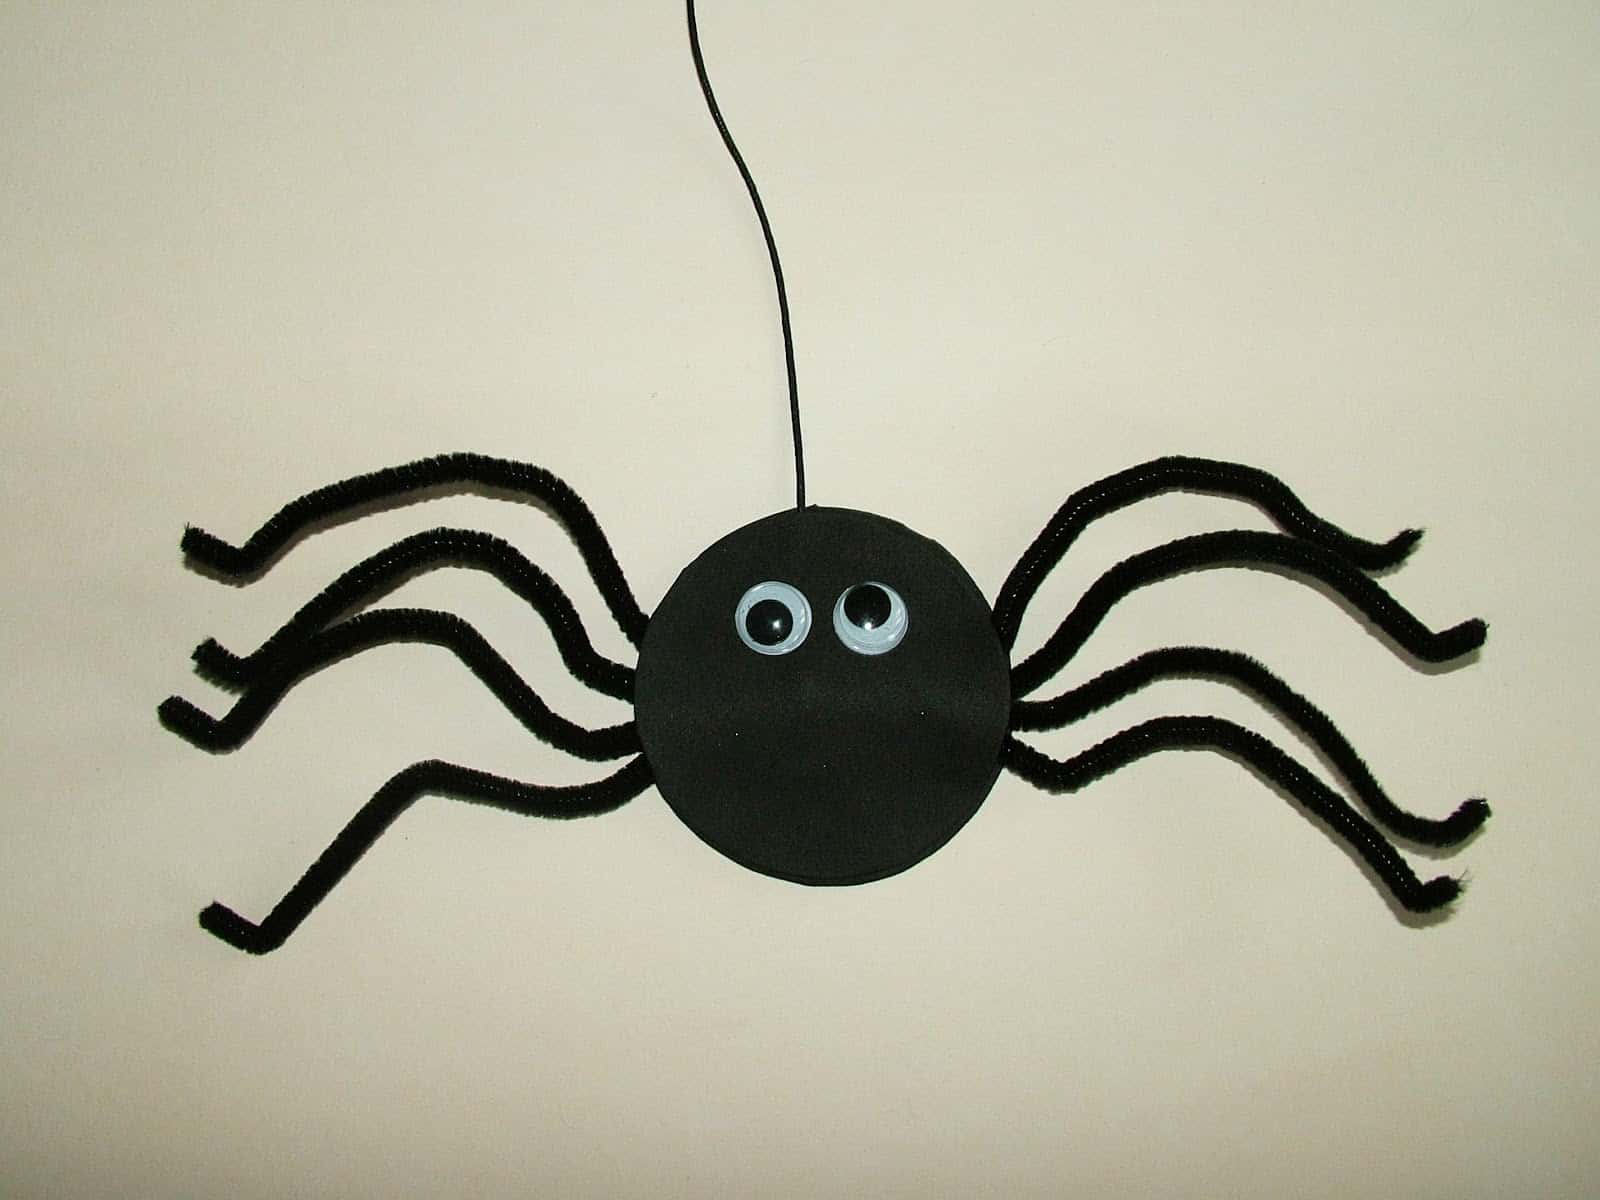 Bouncing spider craft